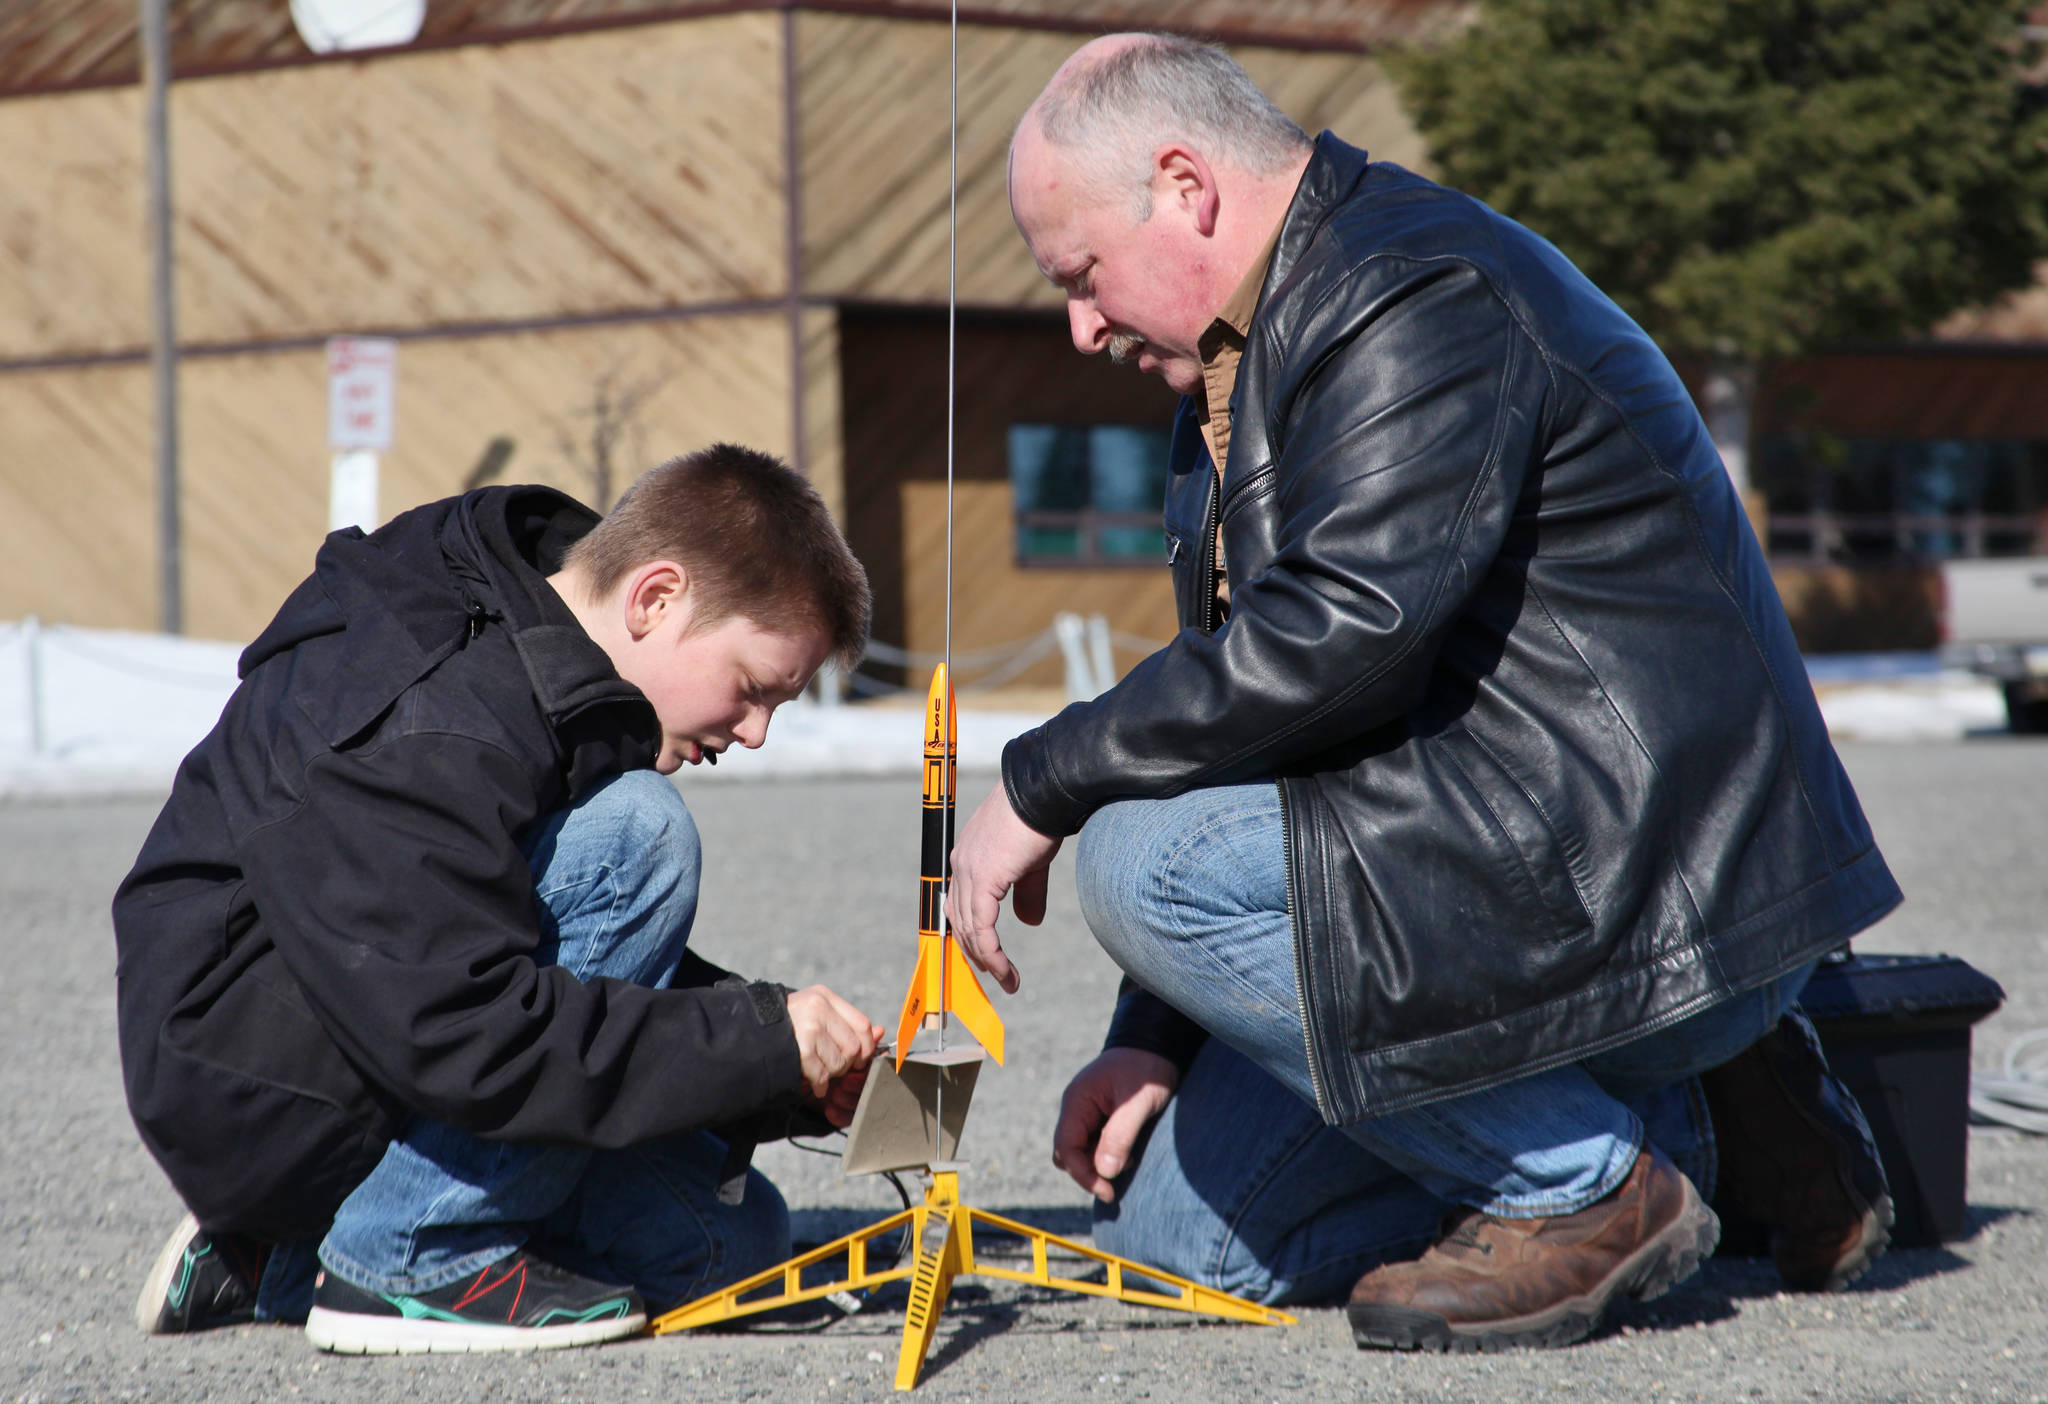 "Asa Lorentzen (left) clips wires to ignition contacts while model rocketry instructor Scott Aleckson observes in the parking lot of the Soldotna Regional Sports Complex in Soldotna on Saturday. Aleckson said he made and launched his first plastic, balsa wood, and cardboard rocket as a 4th grade student at Soldotna Elementary School. Since then he's built a custom launch system, he said, ""with recycled electronics and a lot of soldering time."" Aleckson taught Saturday's rocketry class through the Soldotna Community Schools program, and would like to continue spreading the hobby. ""If I could get a model rocket club going, that'd be great,"" he said. ""Stuff like this is much more fun in a group."" (Photo by Ben Boettger/Peninsula Clarion)"